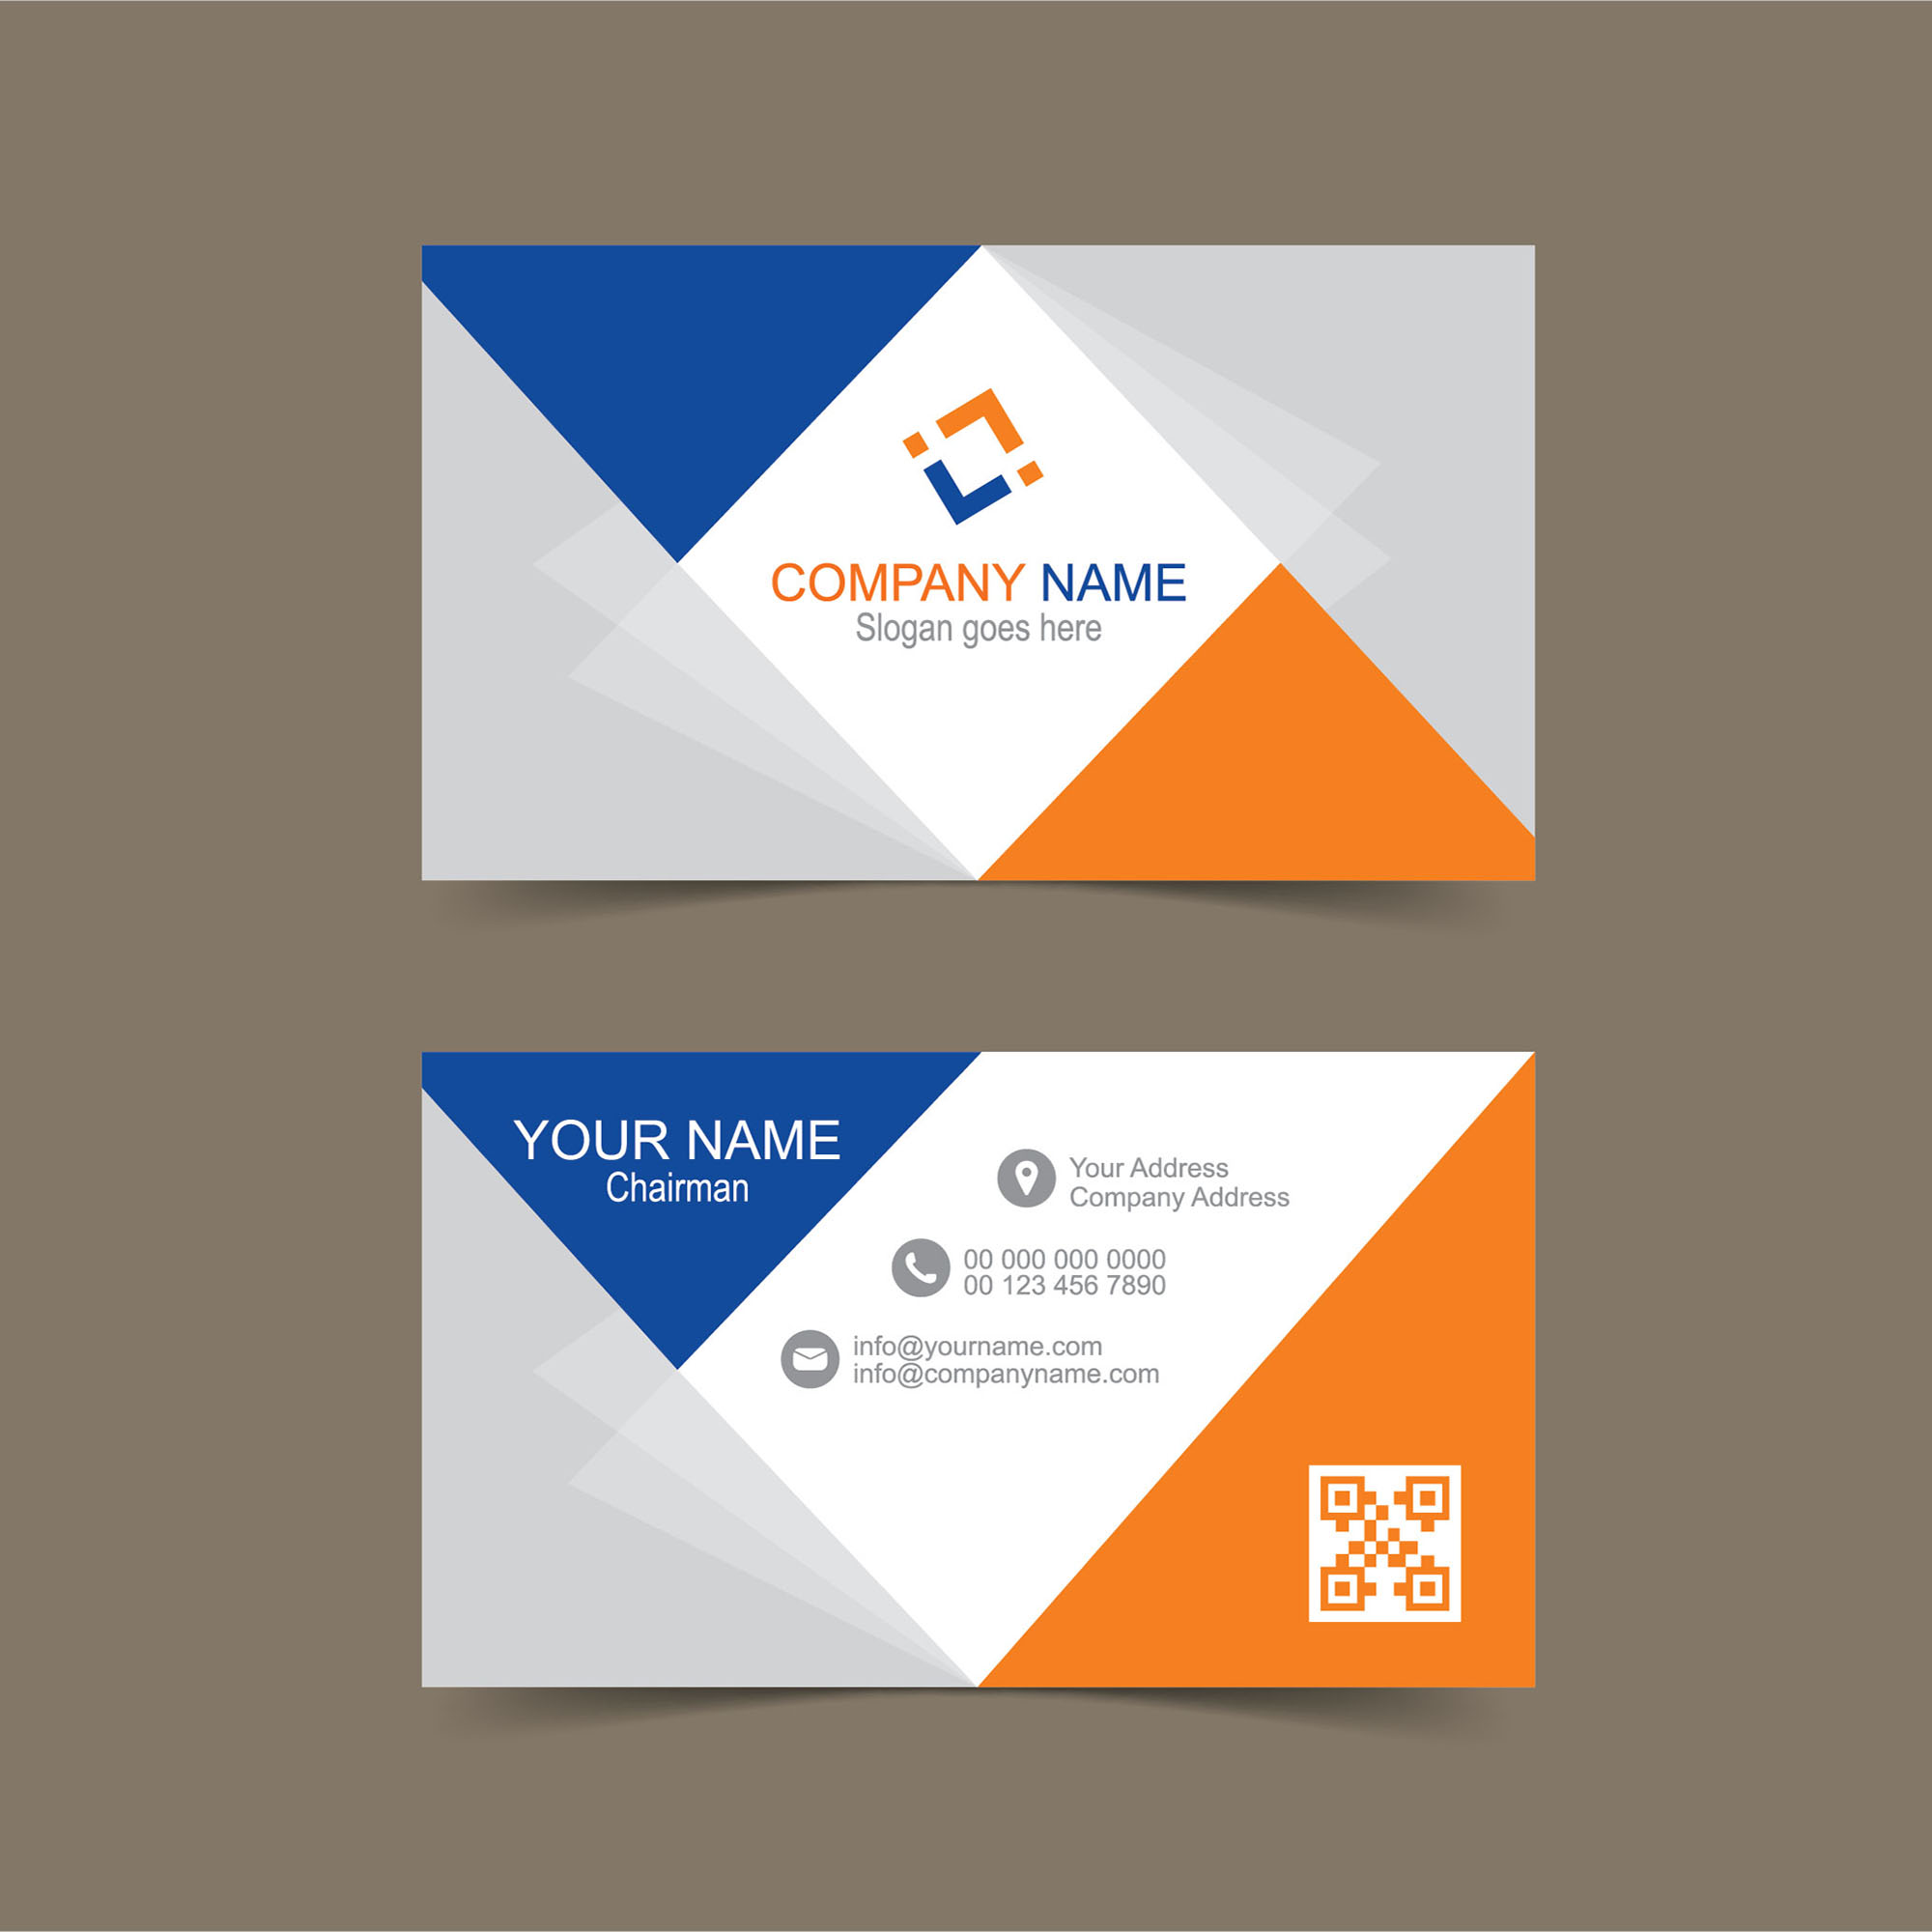 Free business card template for illustrator wisxi business card business cards business card design business card template design templates friedricerecipe Gallery